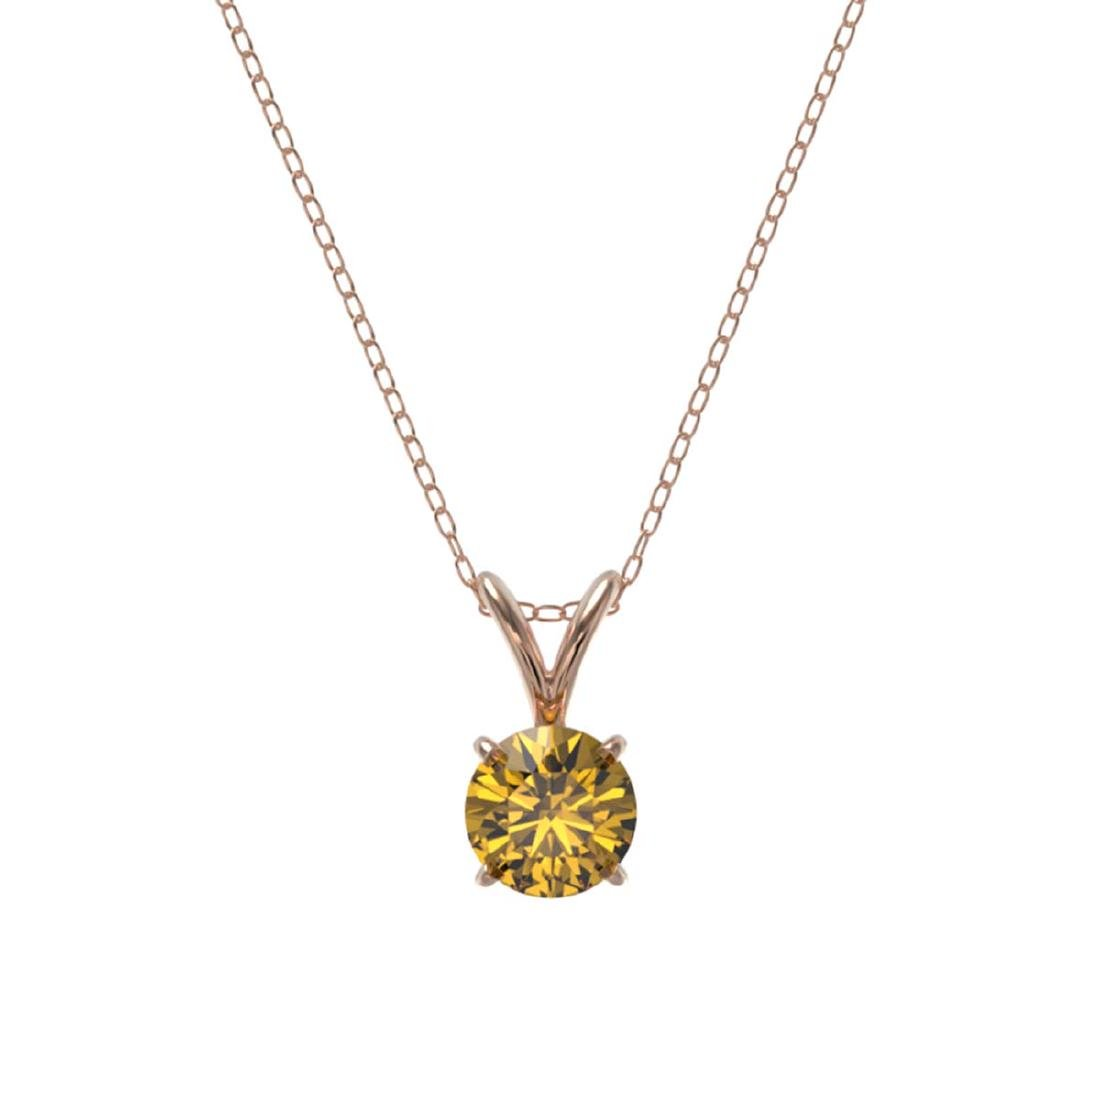 0.53 CTW Intense Yellow SI Diamond Solitaire Necklace - 3